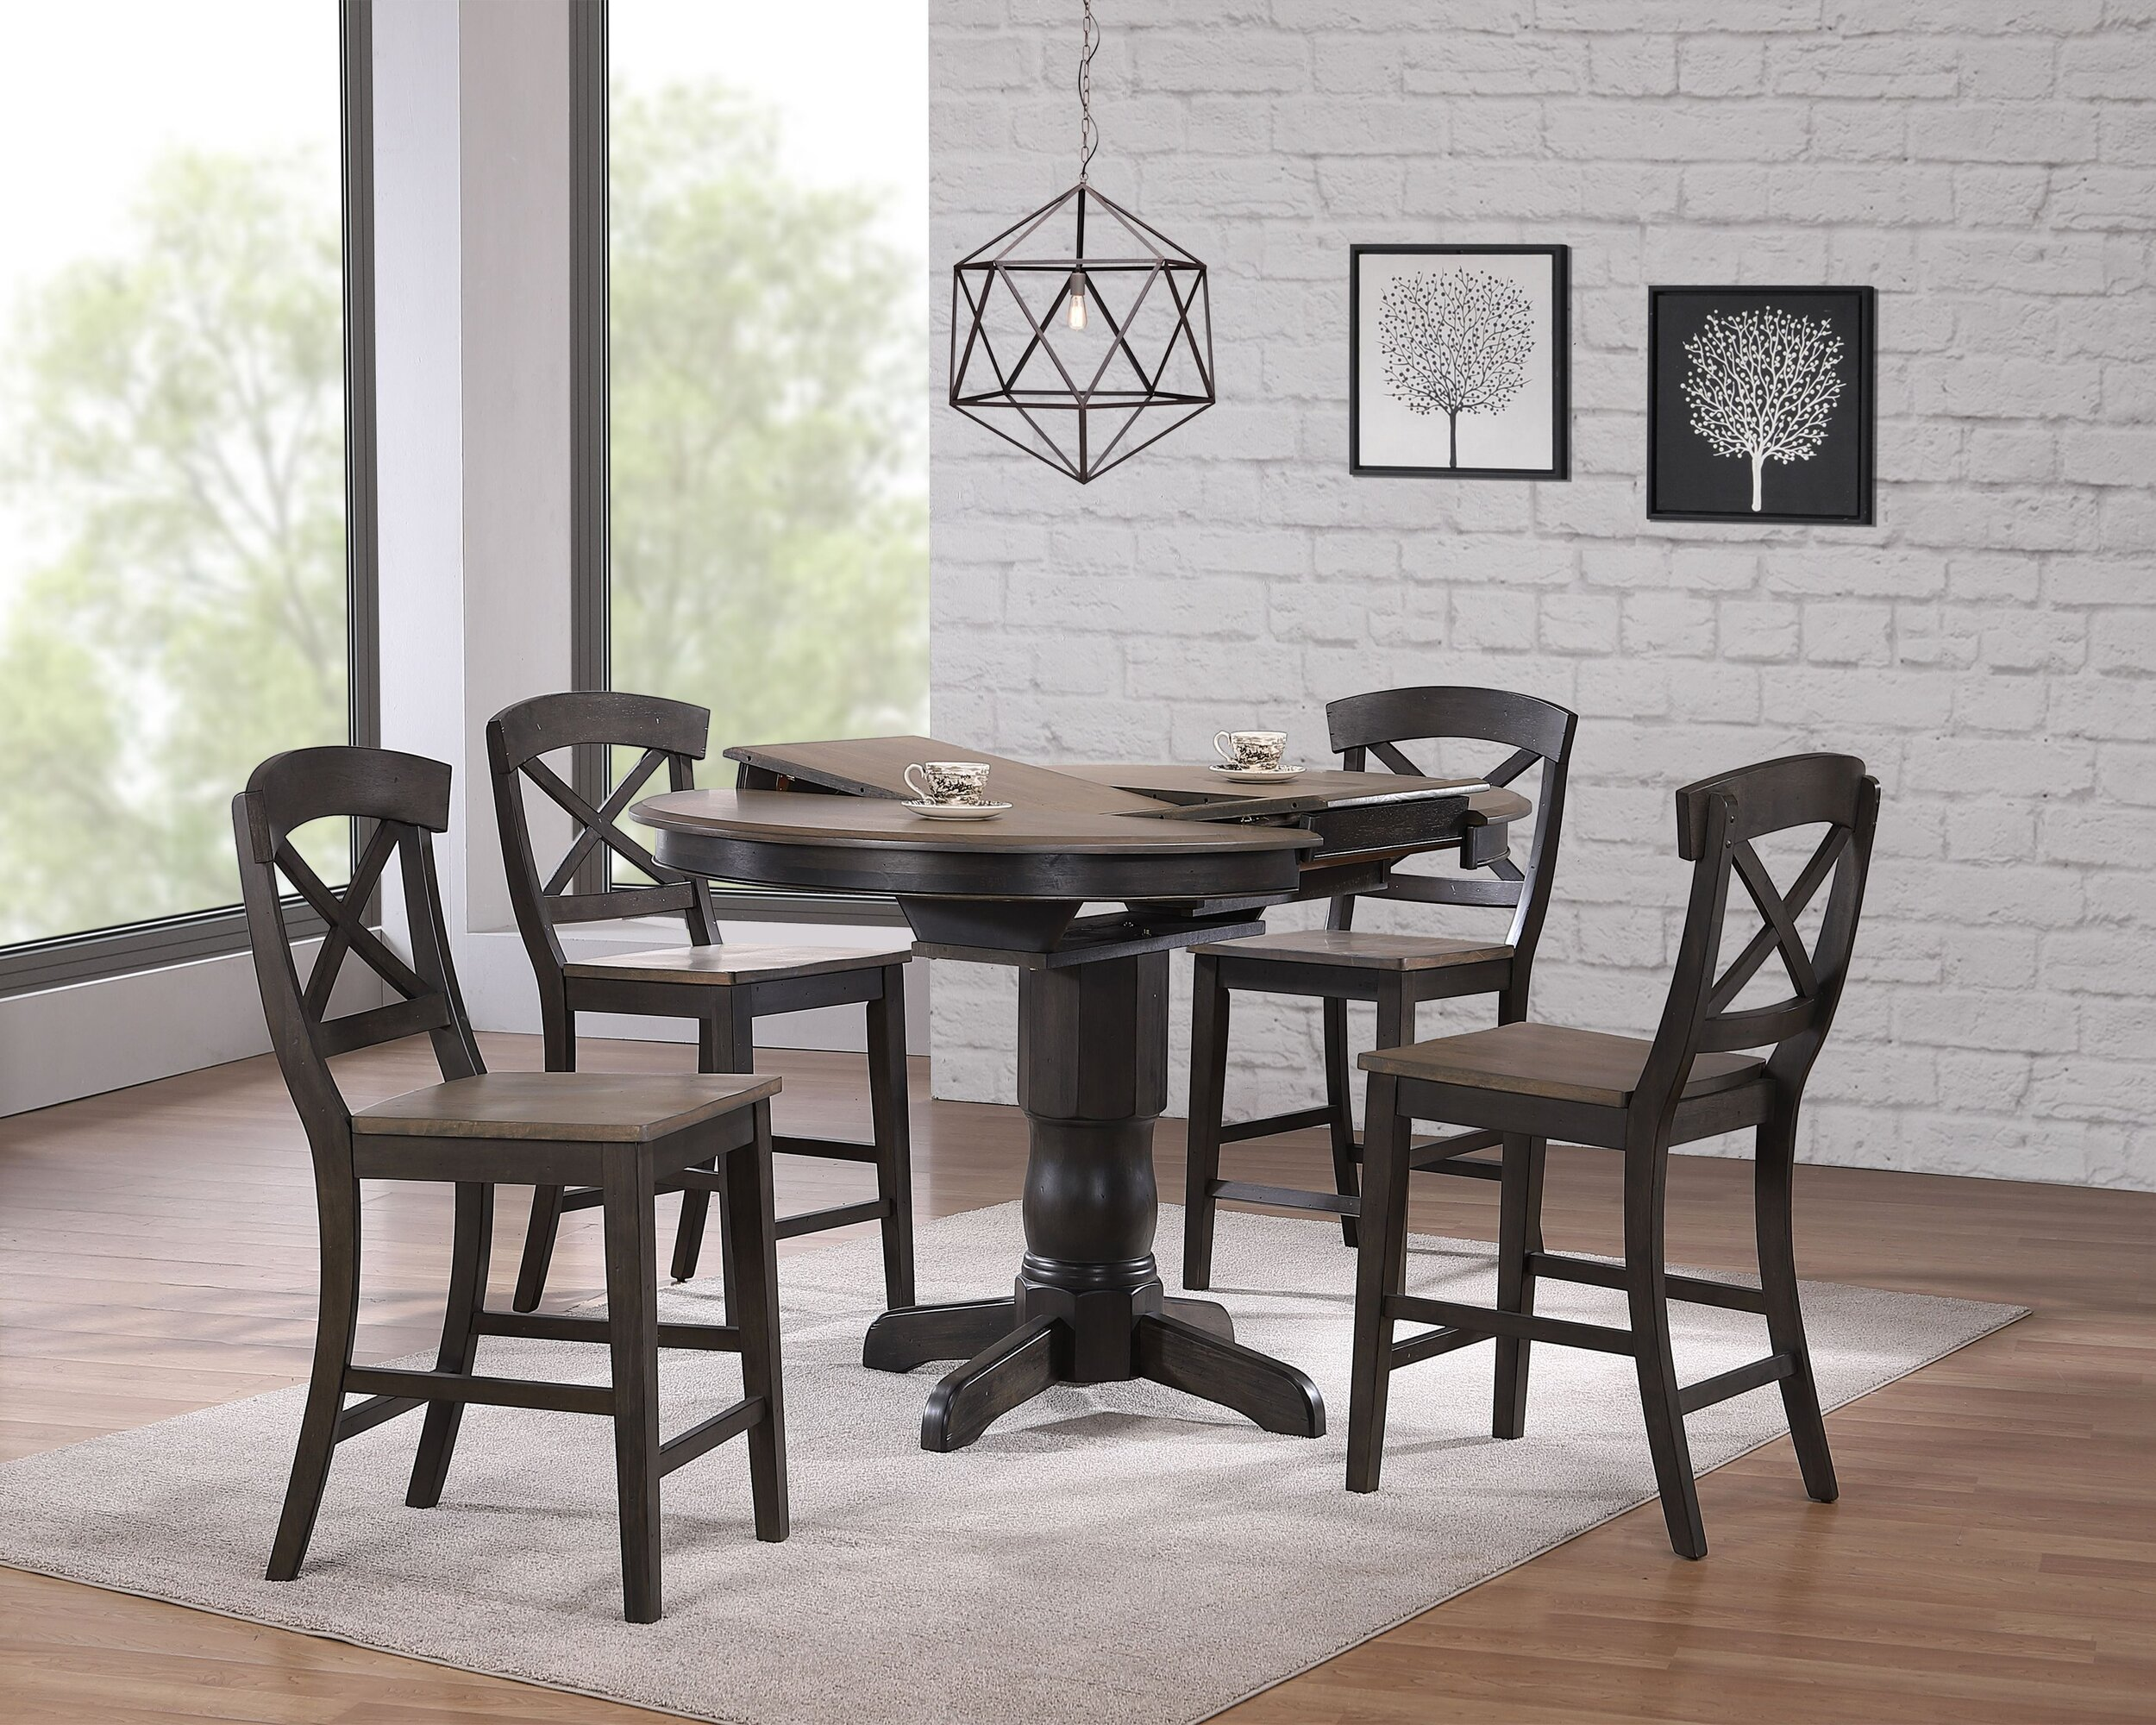 "42""x42""x60"" Transitional X-Back 24""Counter Stool Grey Stone Black Stone  Counter Height 5-Piece Dining Set"